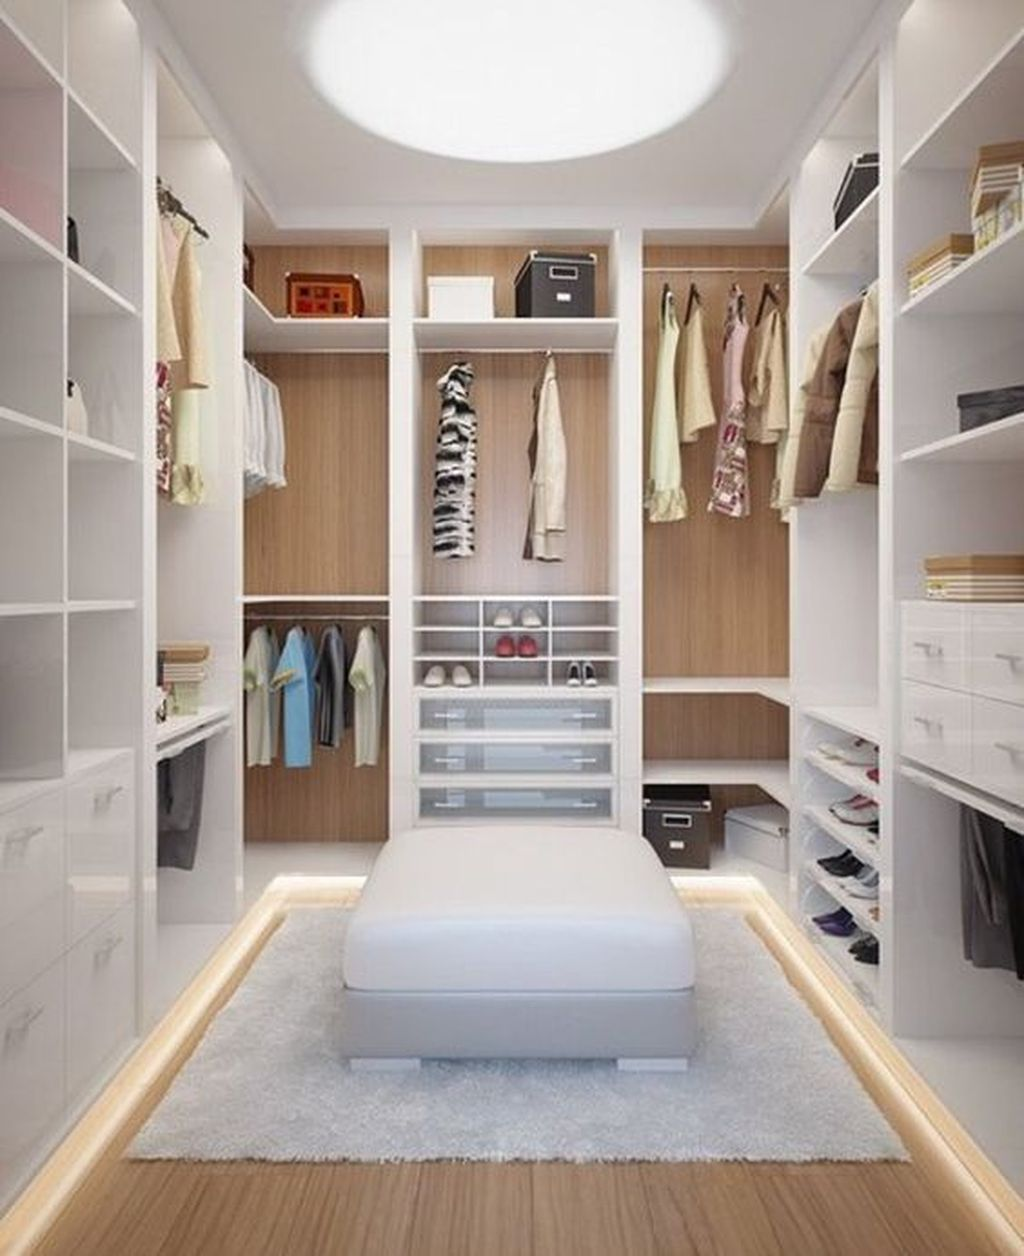 37 Awesome Closet Room Design Ideas For Your Bedroom Bedroom